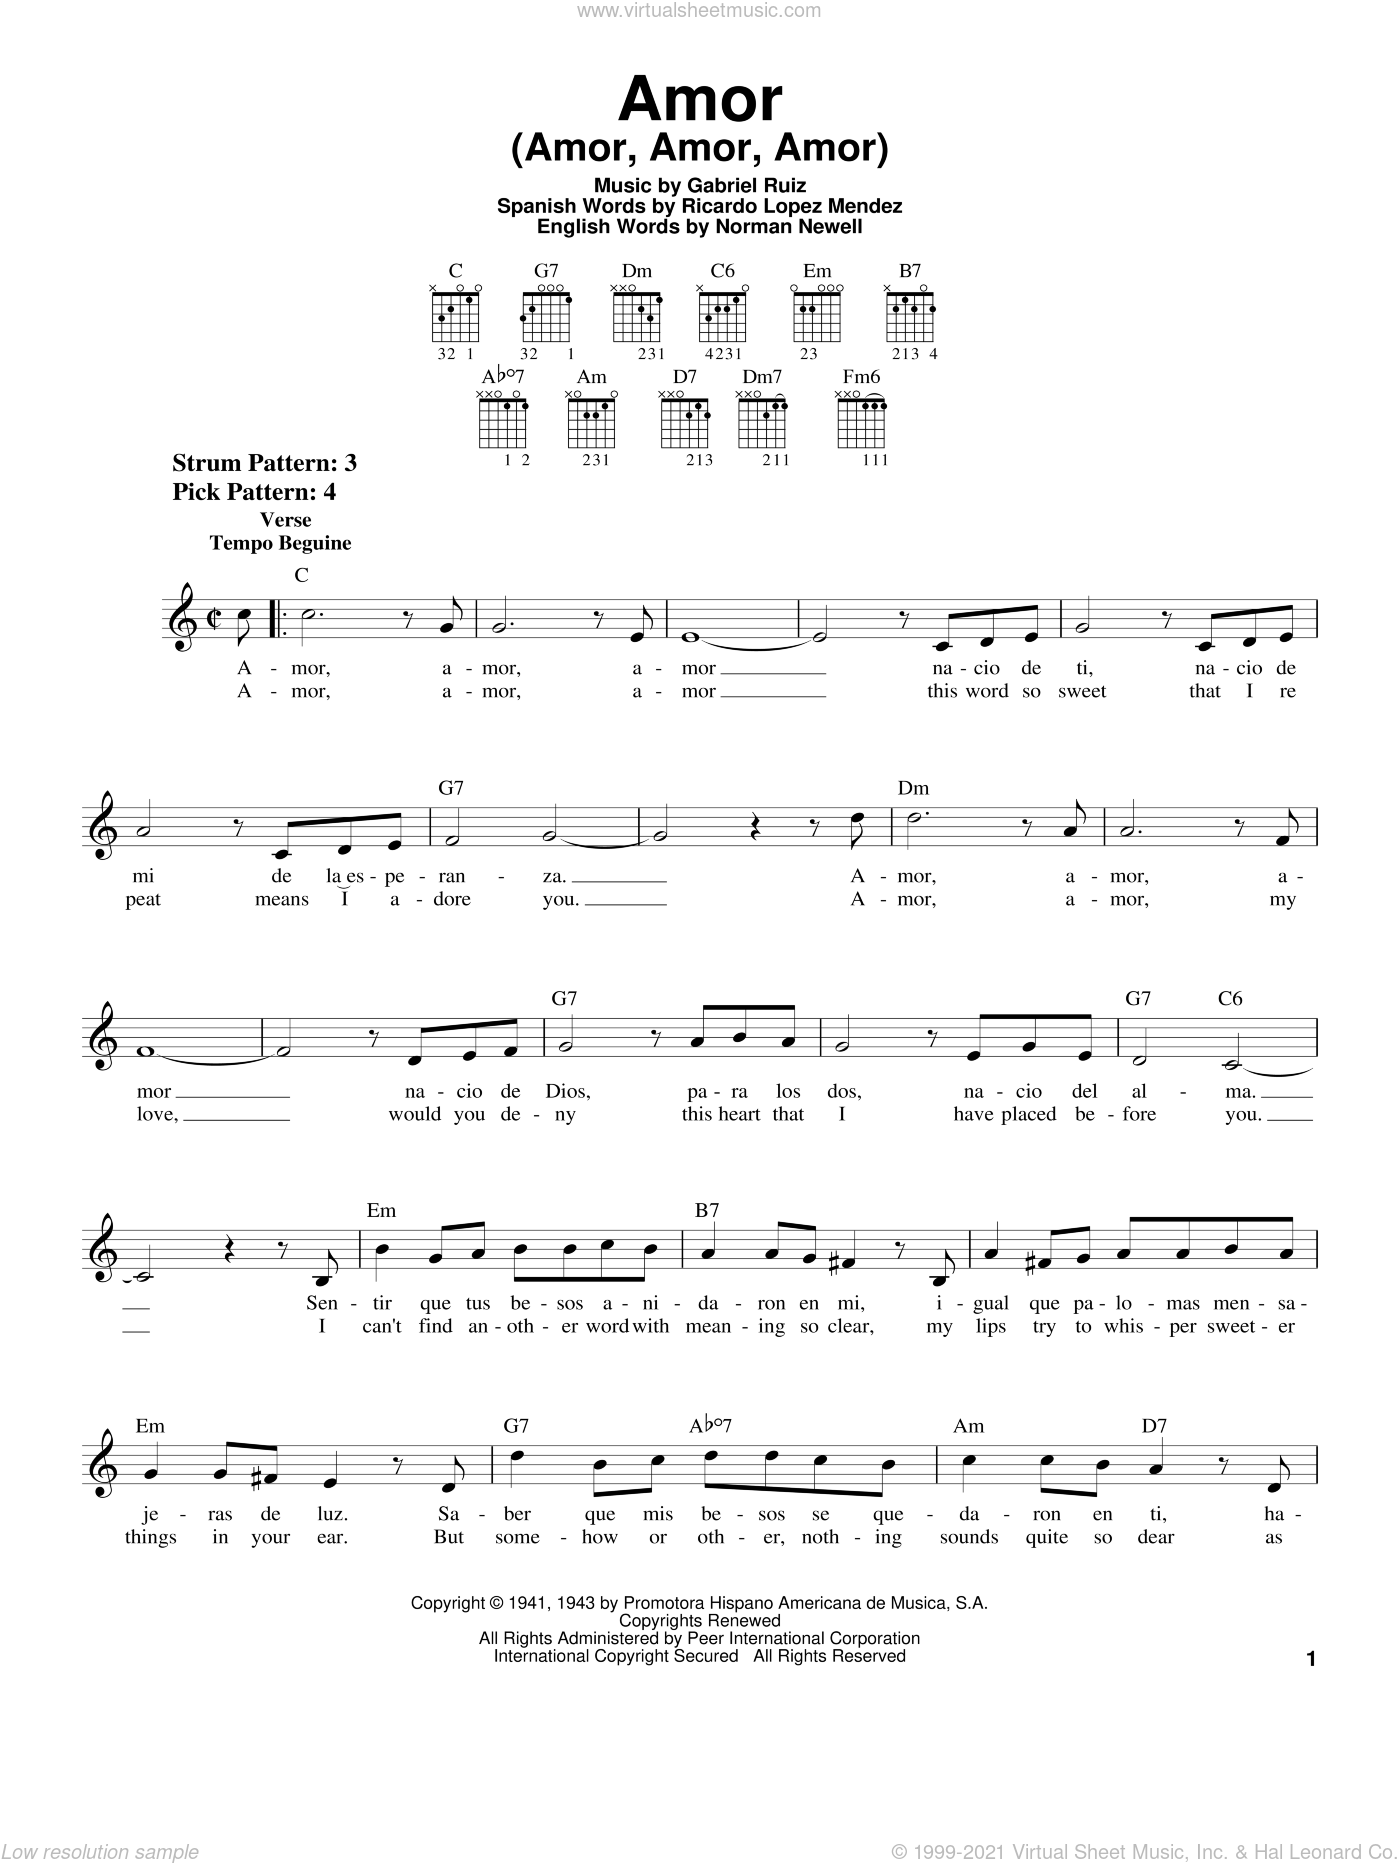 Amor (Amor, Amor, Amor) sheet music for guitar solo (chords) by Ricardo Lopez Mendez, Gabriel Ruiz and Norman Newell. Score Image Preview.